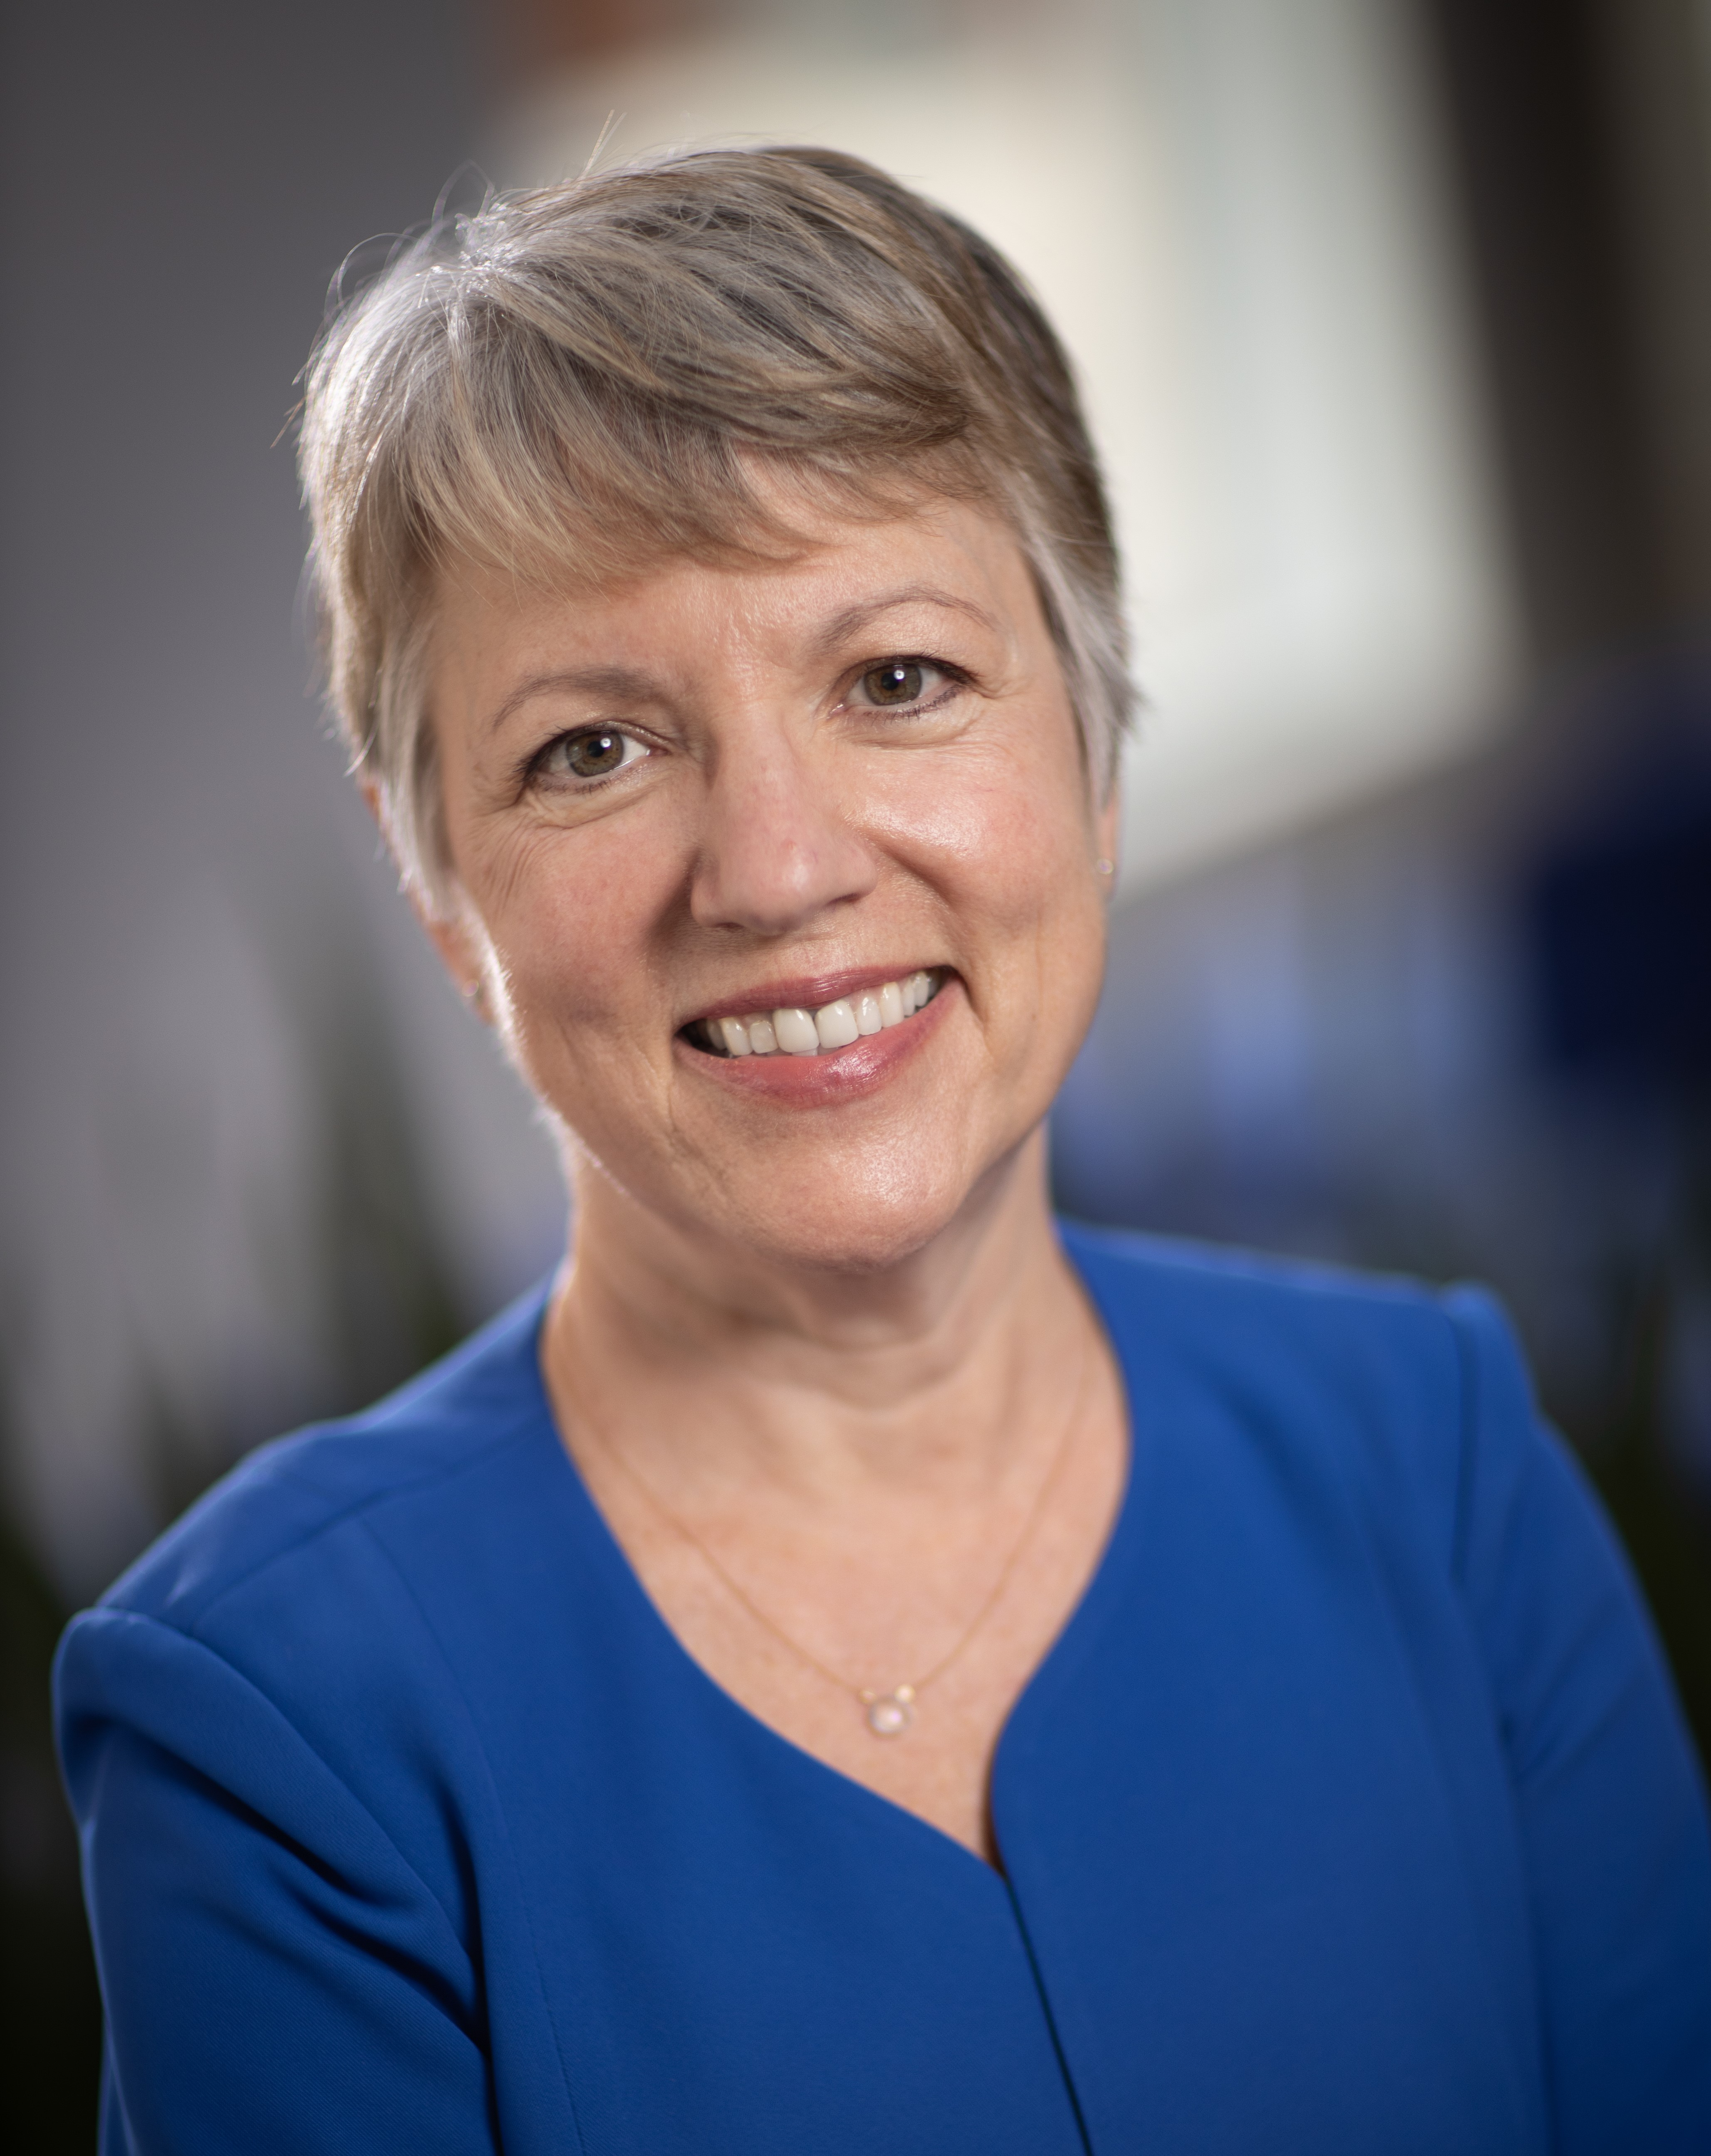 A headshot of Christine Goertz, Chairperson of the PCORI Board of Governors.